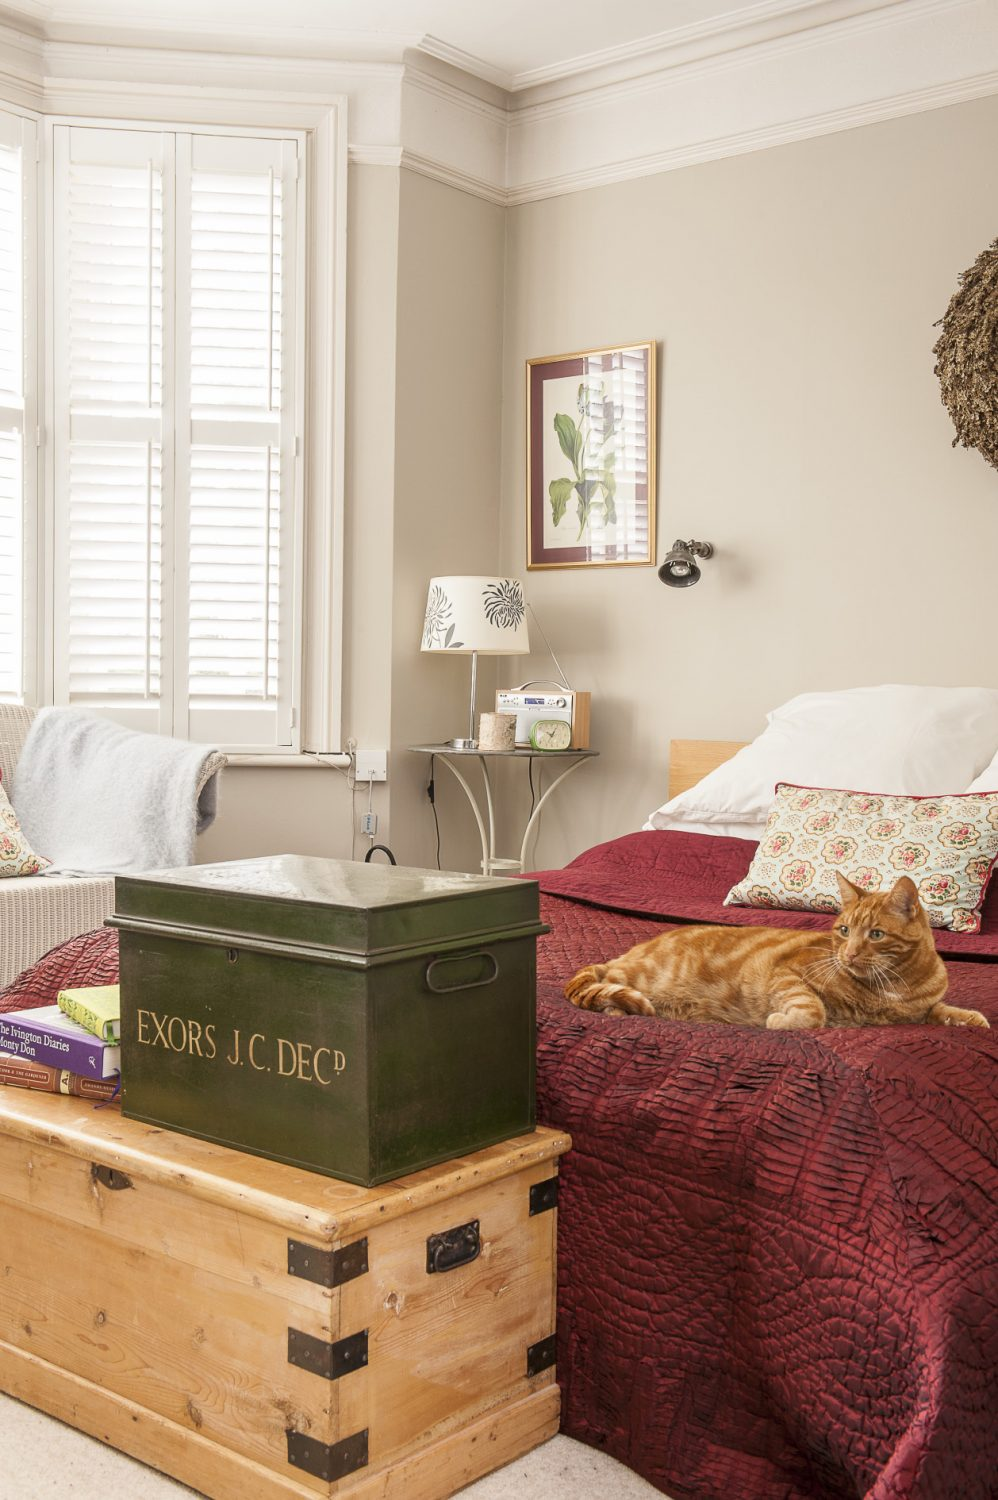 At the foot of the bed is a pine chest and an old steel deed box